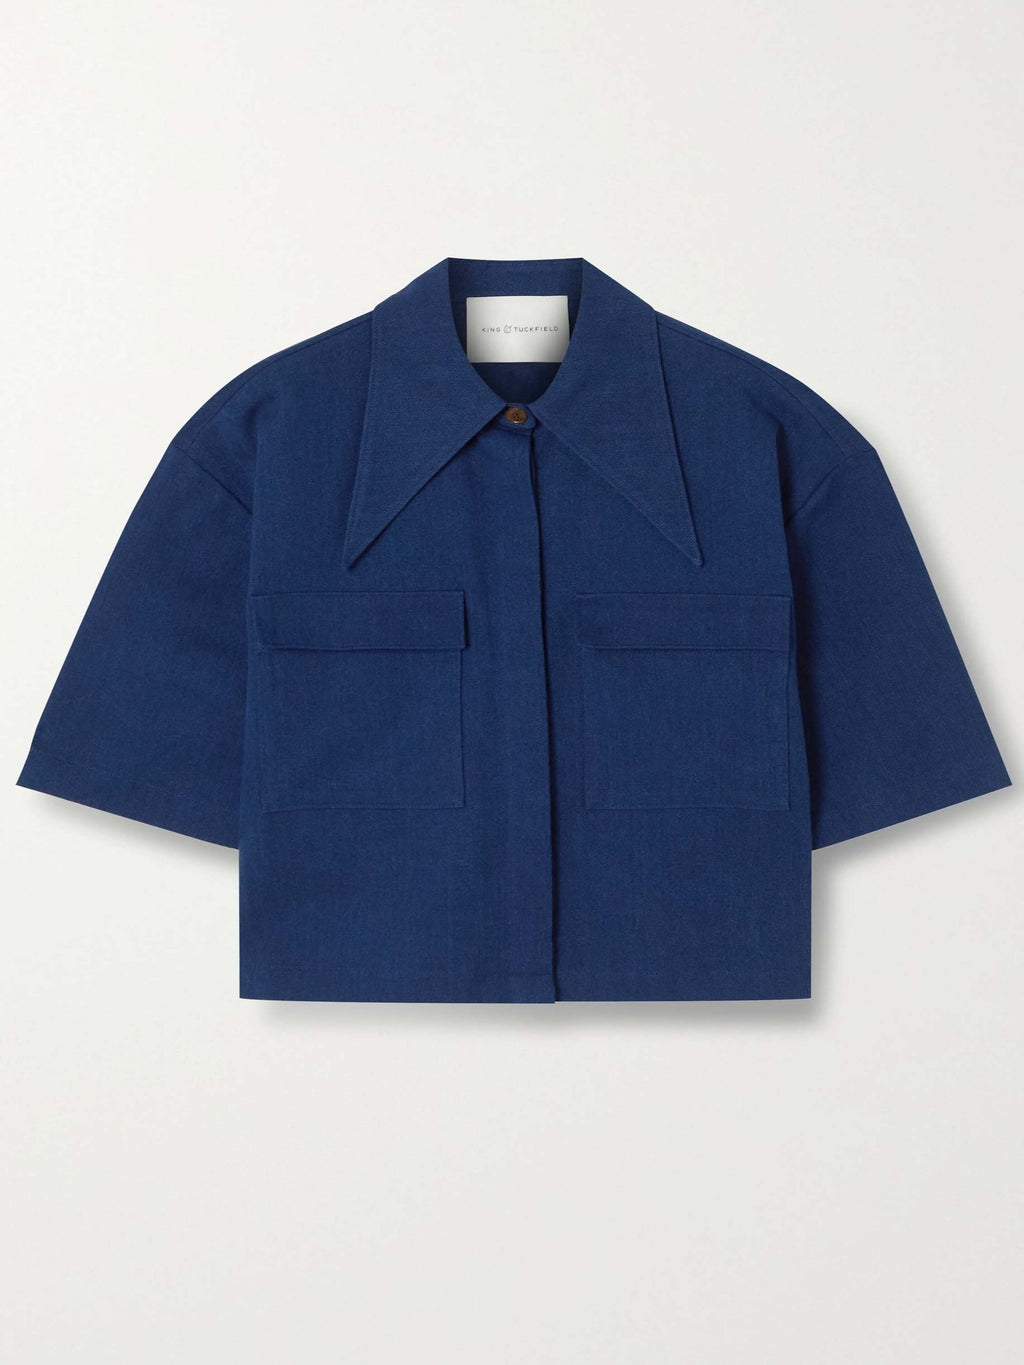 INDIGO POINTED COLLAR SHORT SLEEVE SHIRT